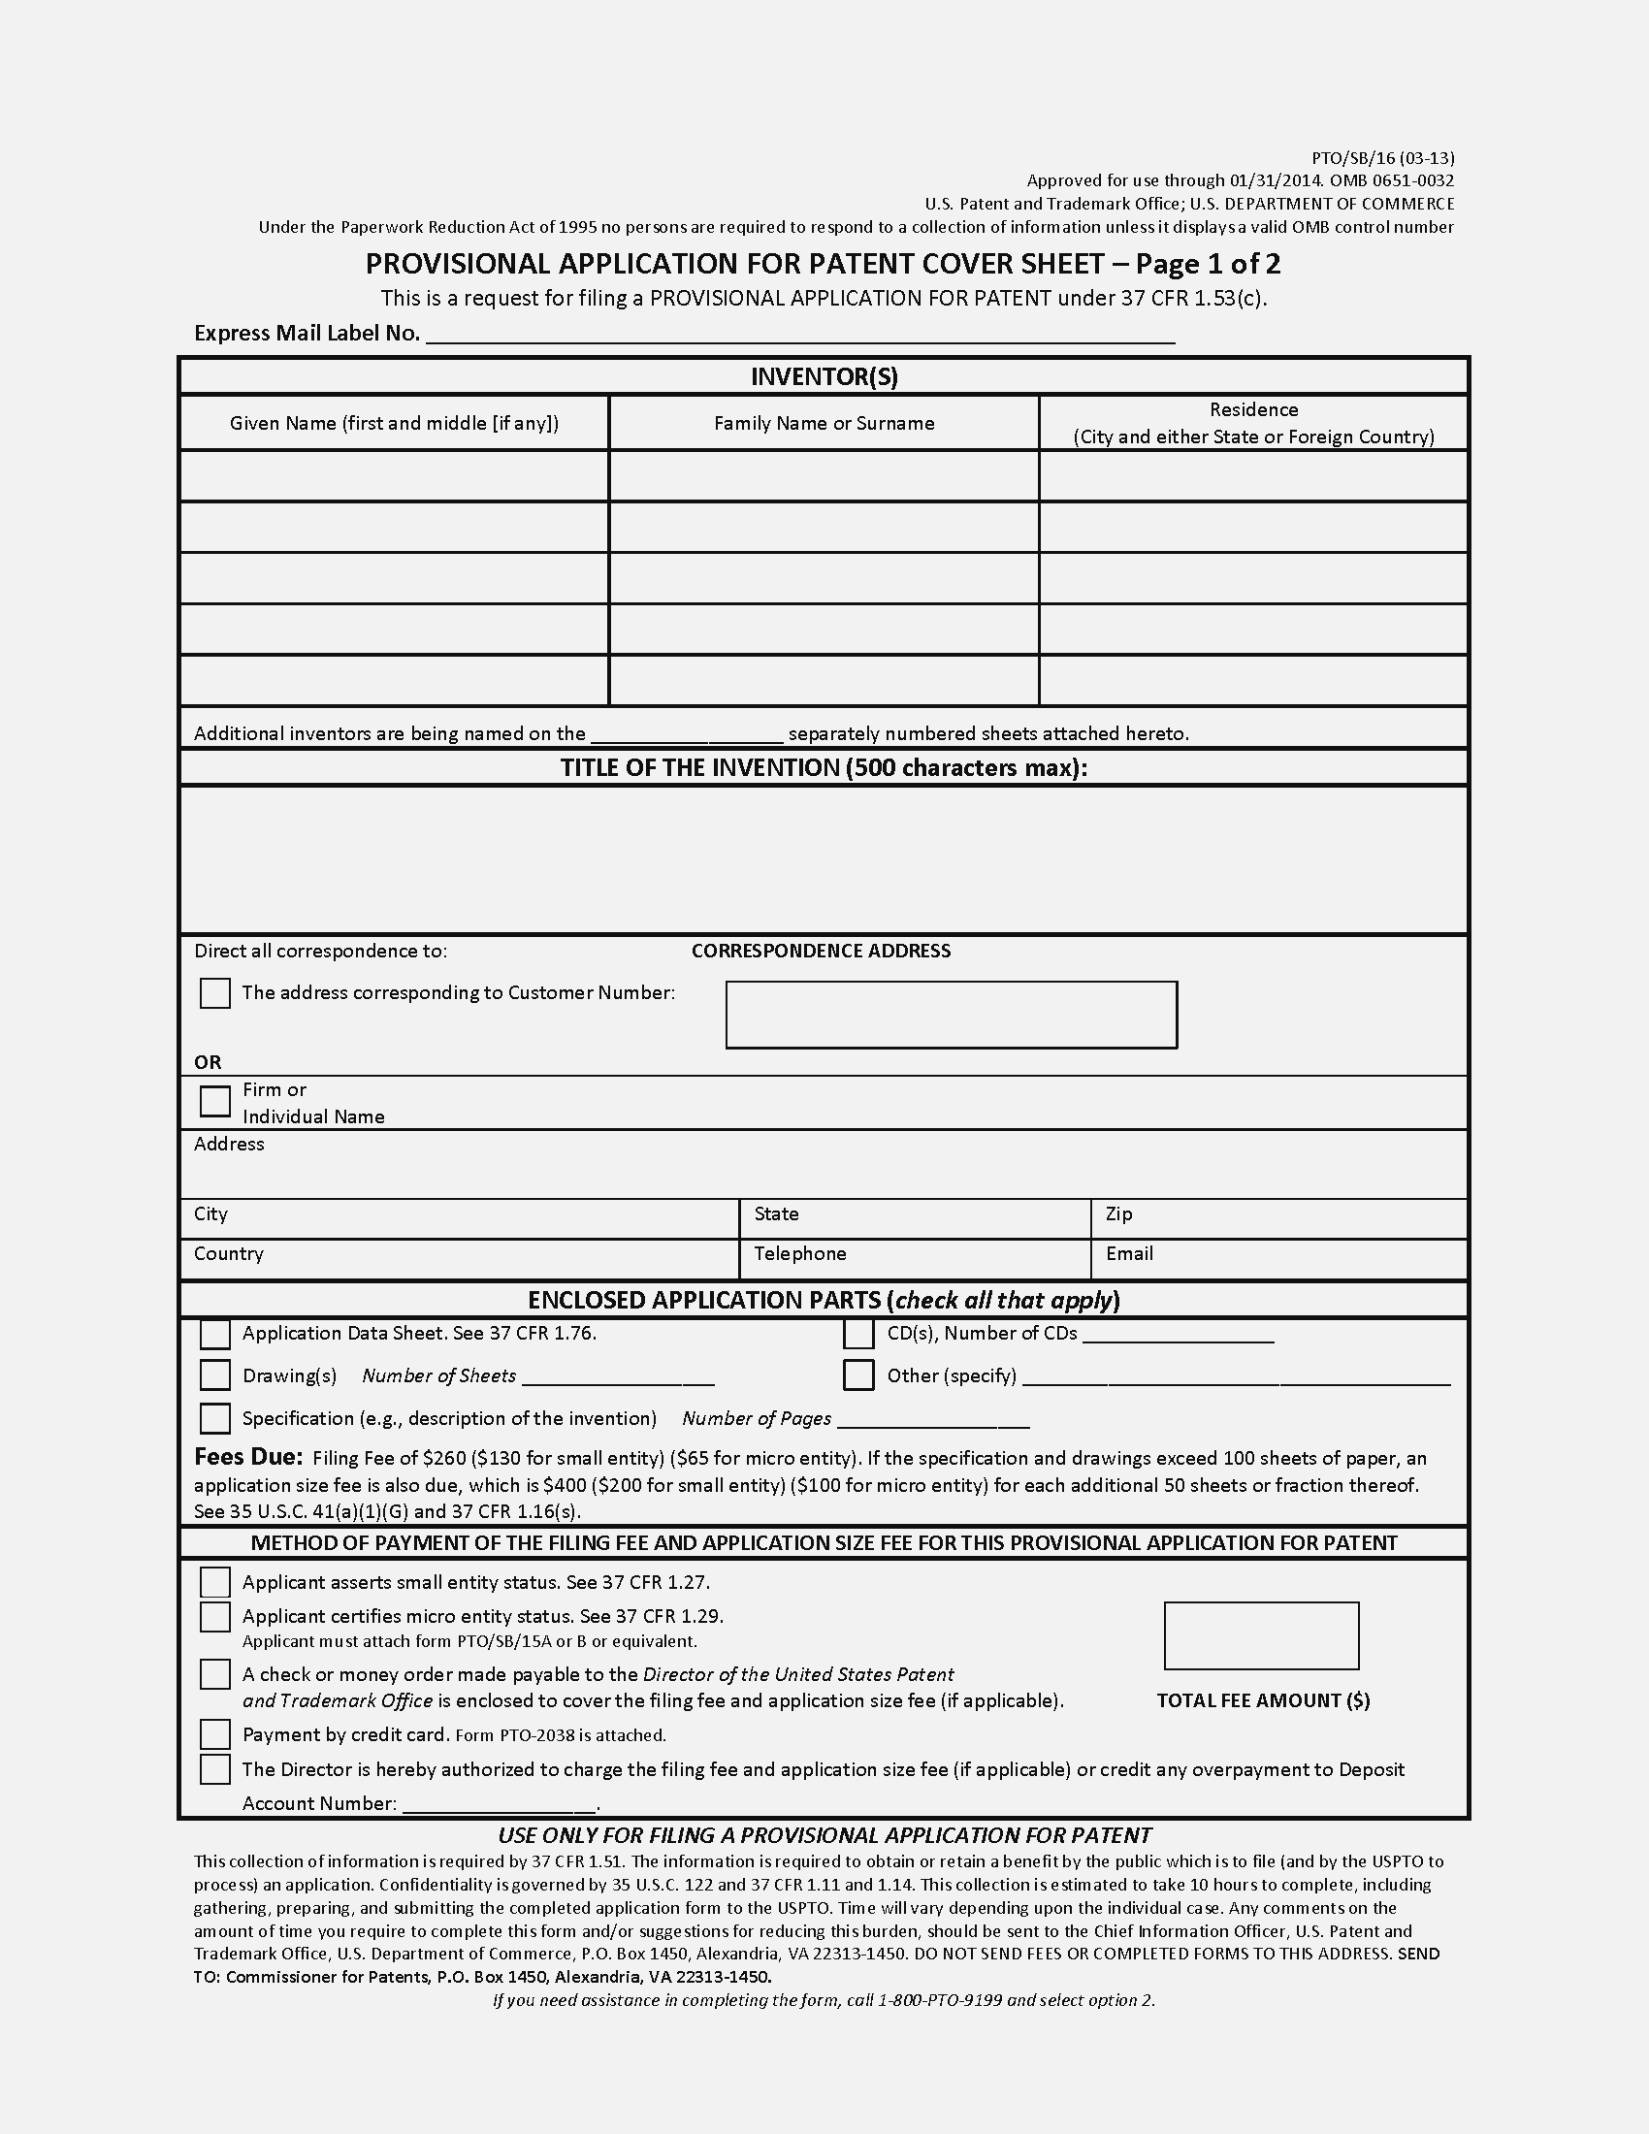 Patent Application Form Template